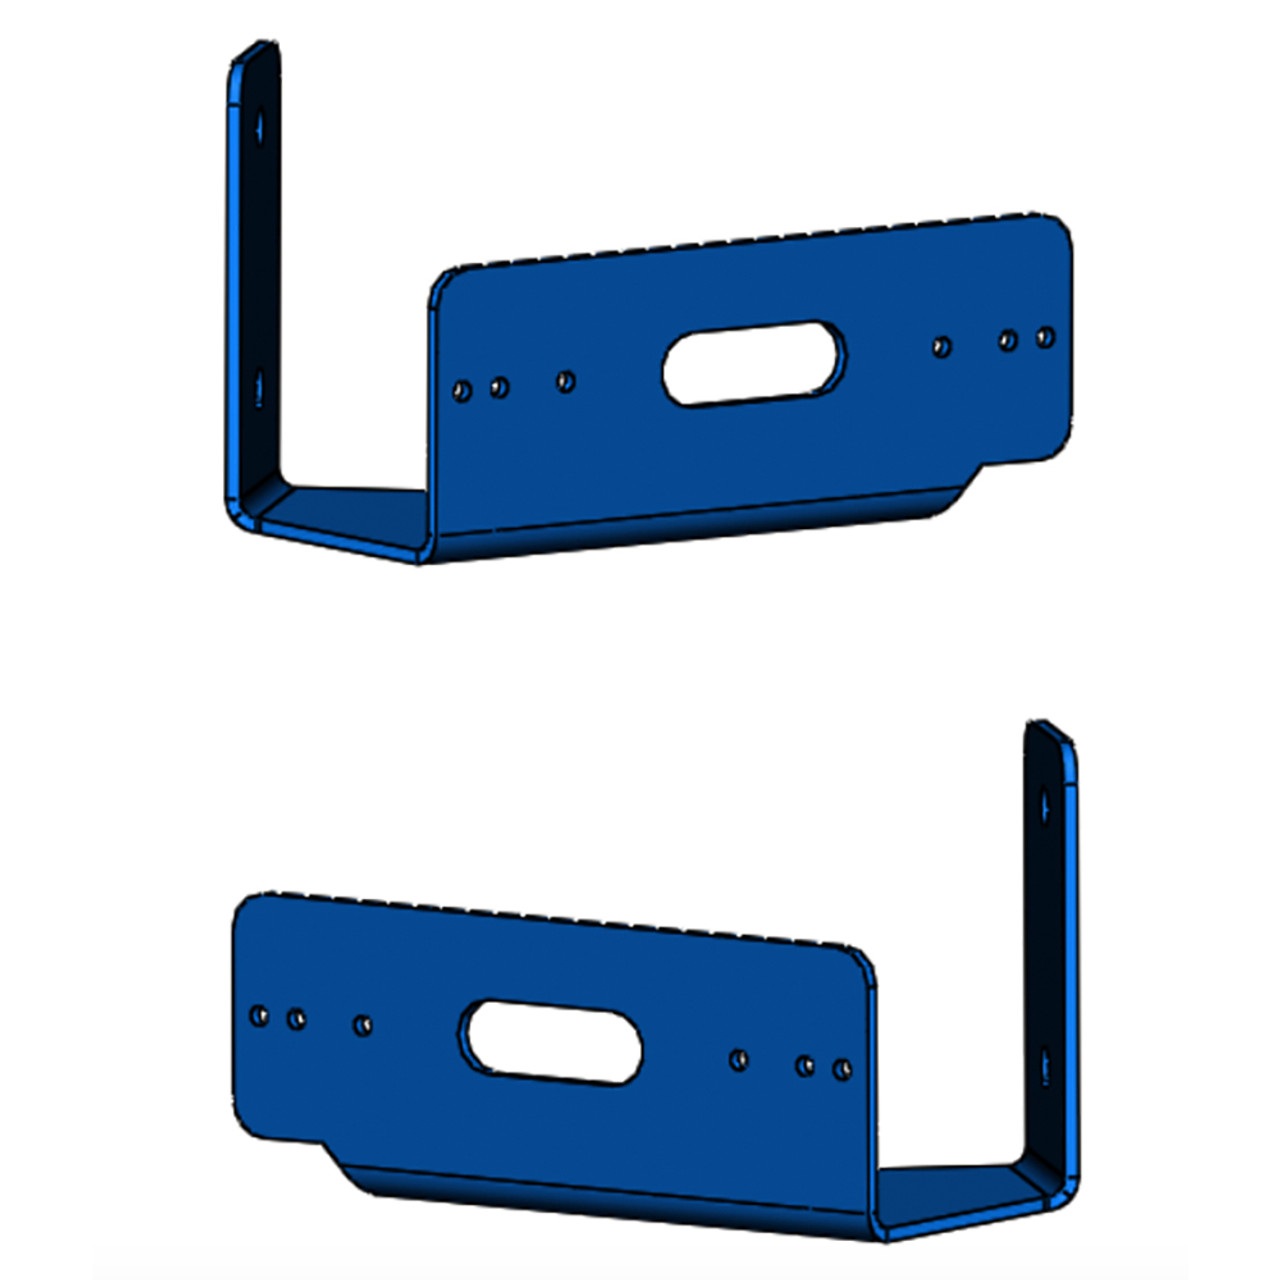 Code-3 Push Bumper pair Bracket, fits T-REX, XTP3, XTP4, and MR6 Light heads, Horizontal 45 Degree Angle PBH45